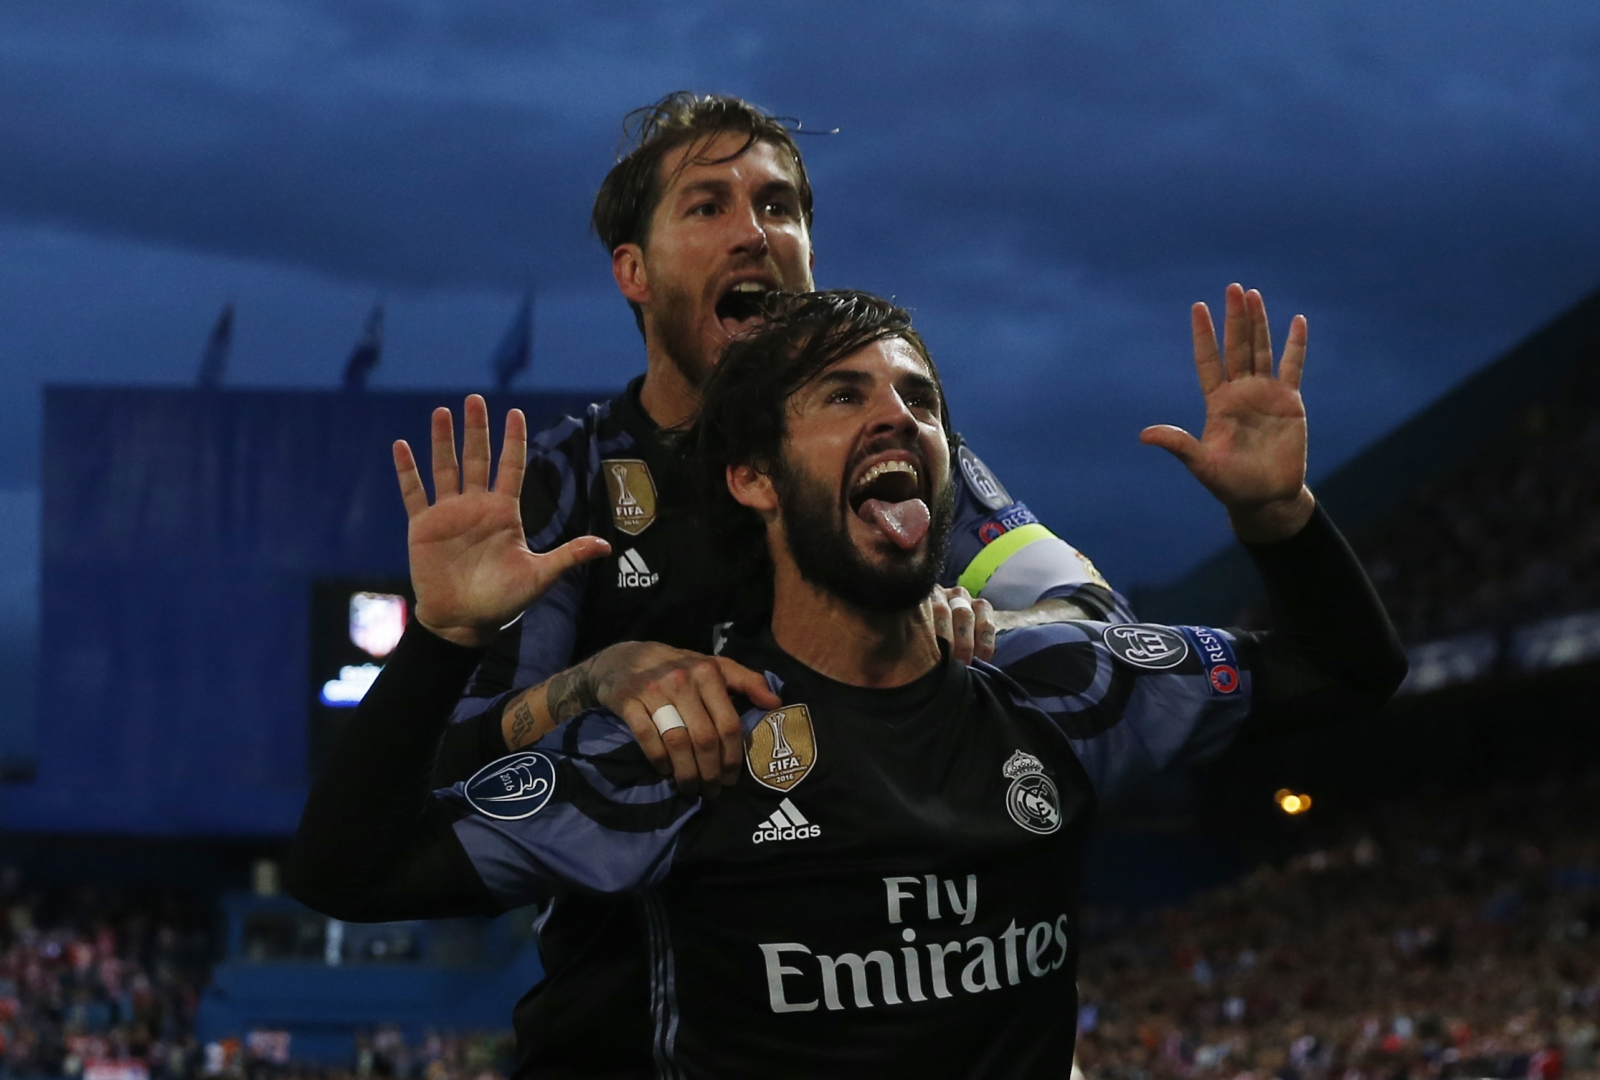 Real Madrid wins its 1st Spanish title since 2012